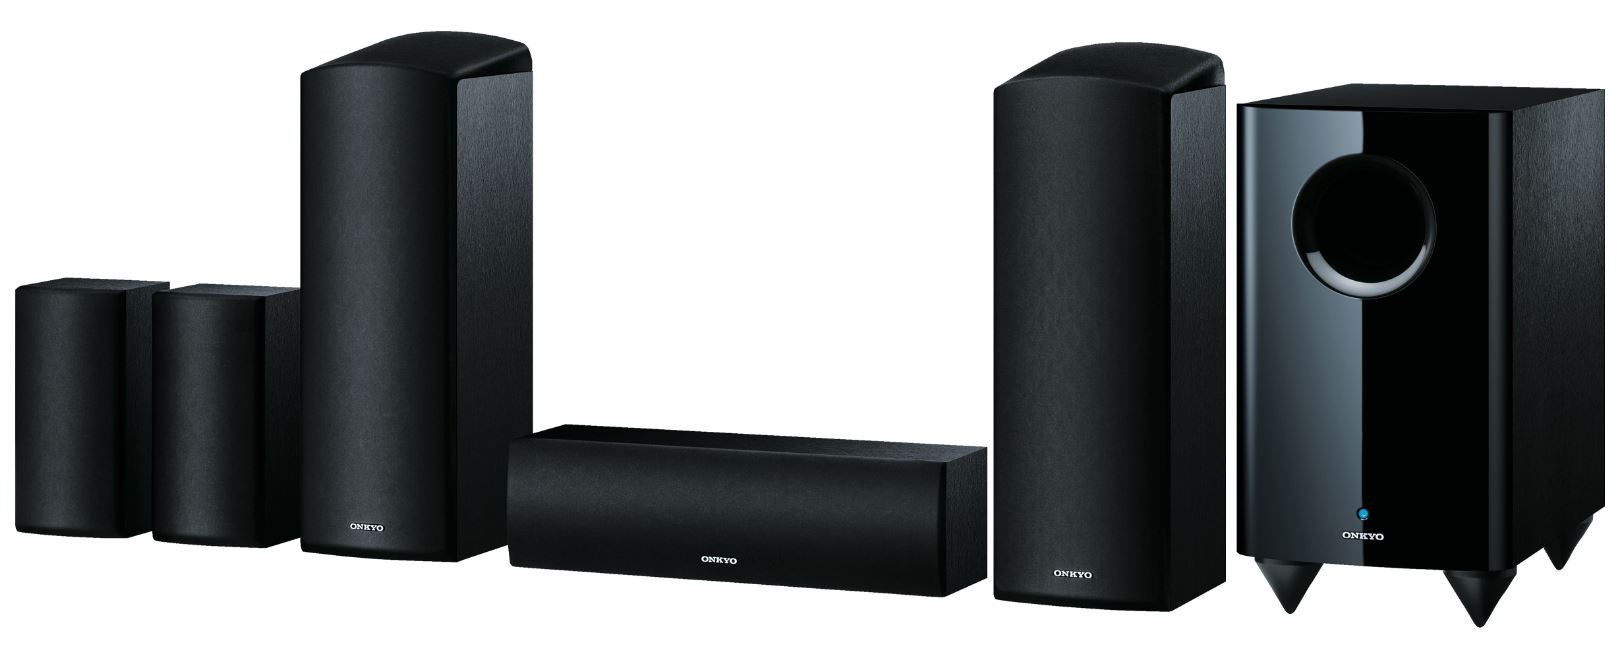 onkyo dolby atmos speakers. onkyo sks-ht588 5.1.2 channel home cinema dolby atmos speaker system speakers